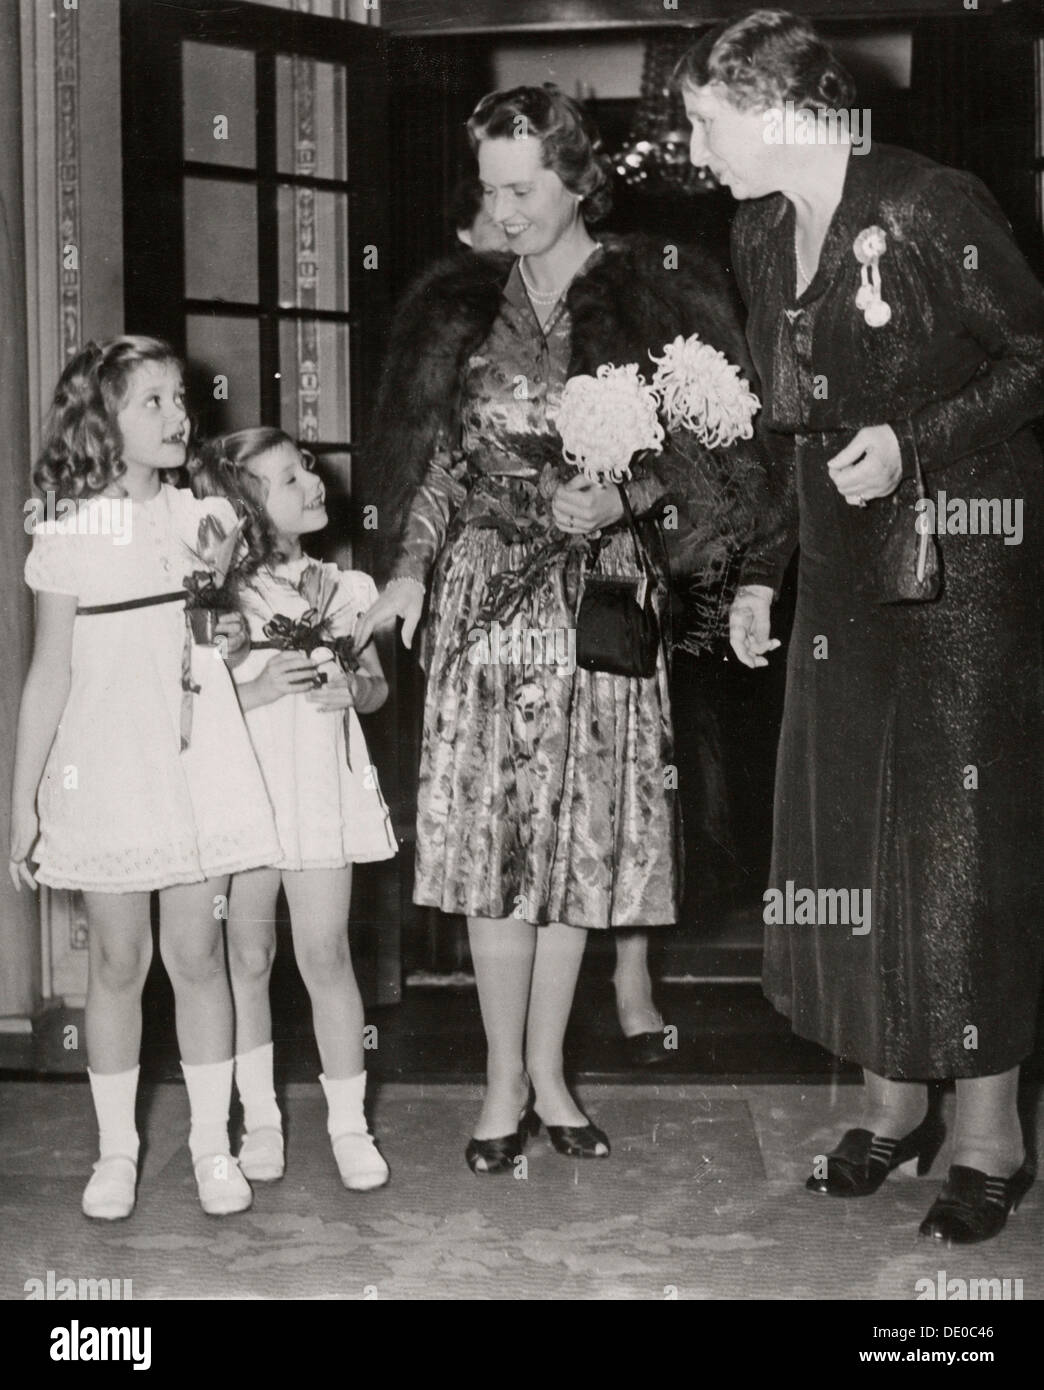 Swedish princesses visiting the Christmas concert at Stockholm Concert Hall, 1943. Princess Sibylla (1908-1972), wife of Prince Gustaf Adolf, Duke of Västerbotten, with two of their daughters, Princess Birgitta (1937-) and Princess Desiree (1938-). - Stock Image